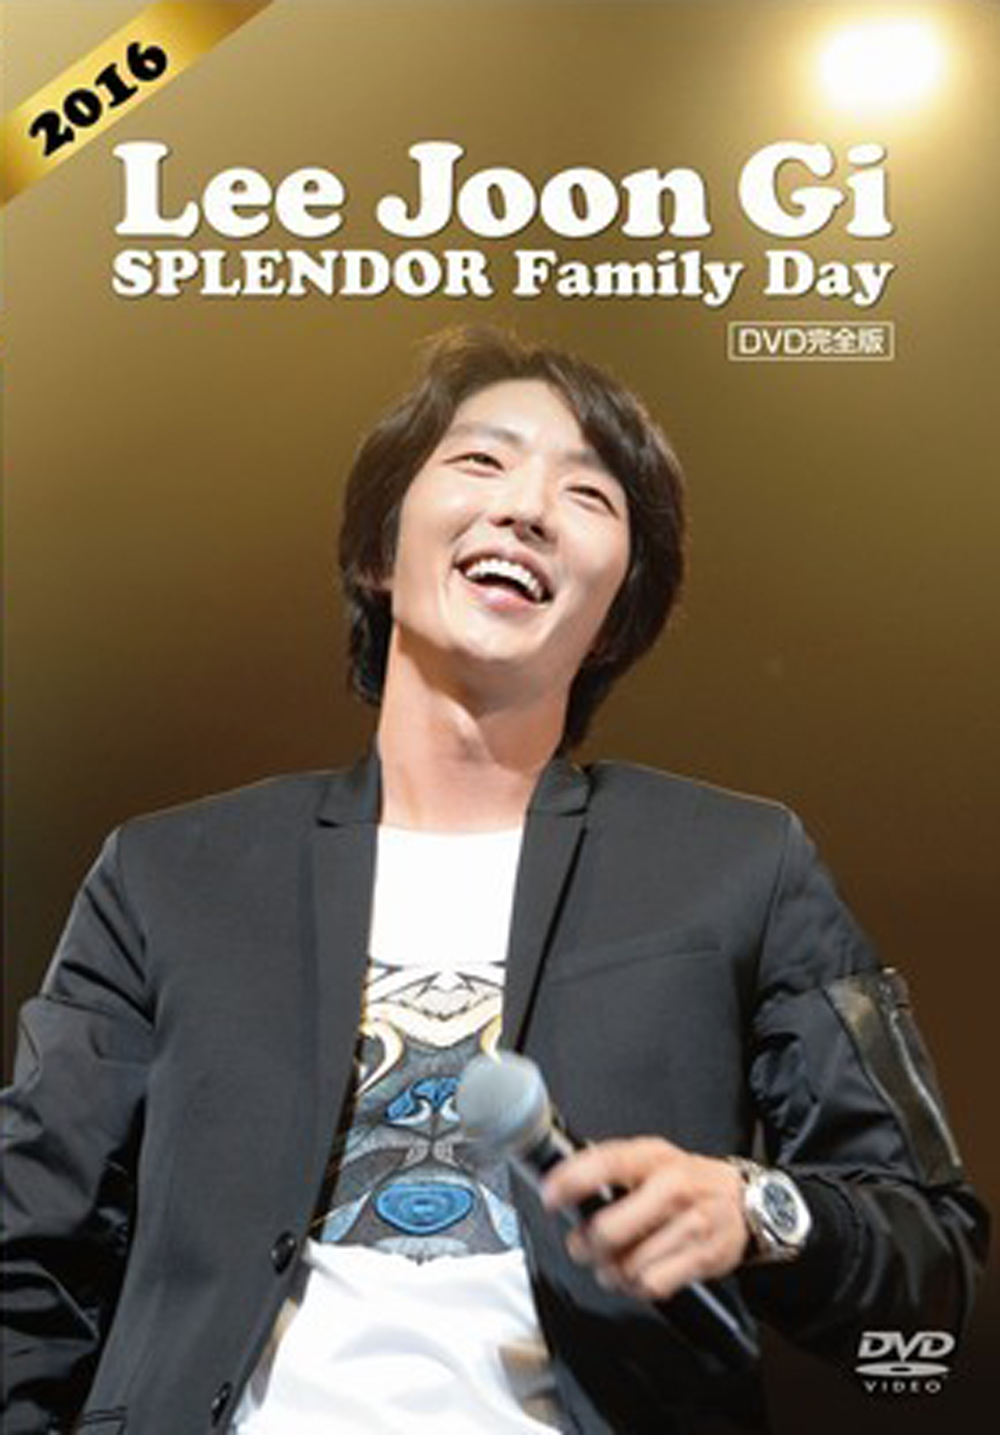 2016 LEE JOONGI SPLENDOR FamilyDay DVD完全版